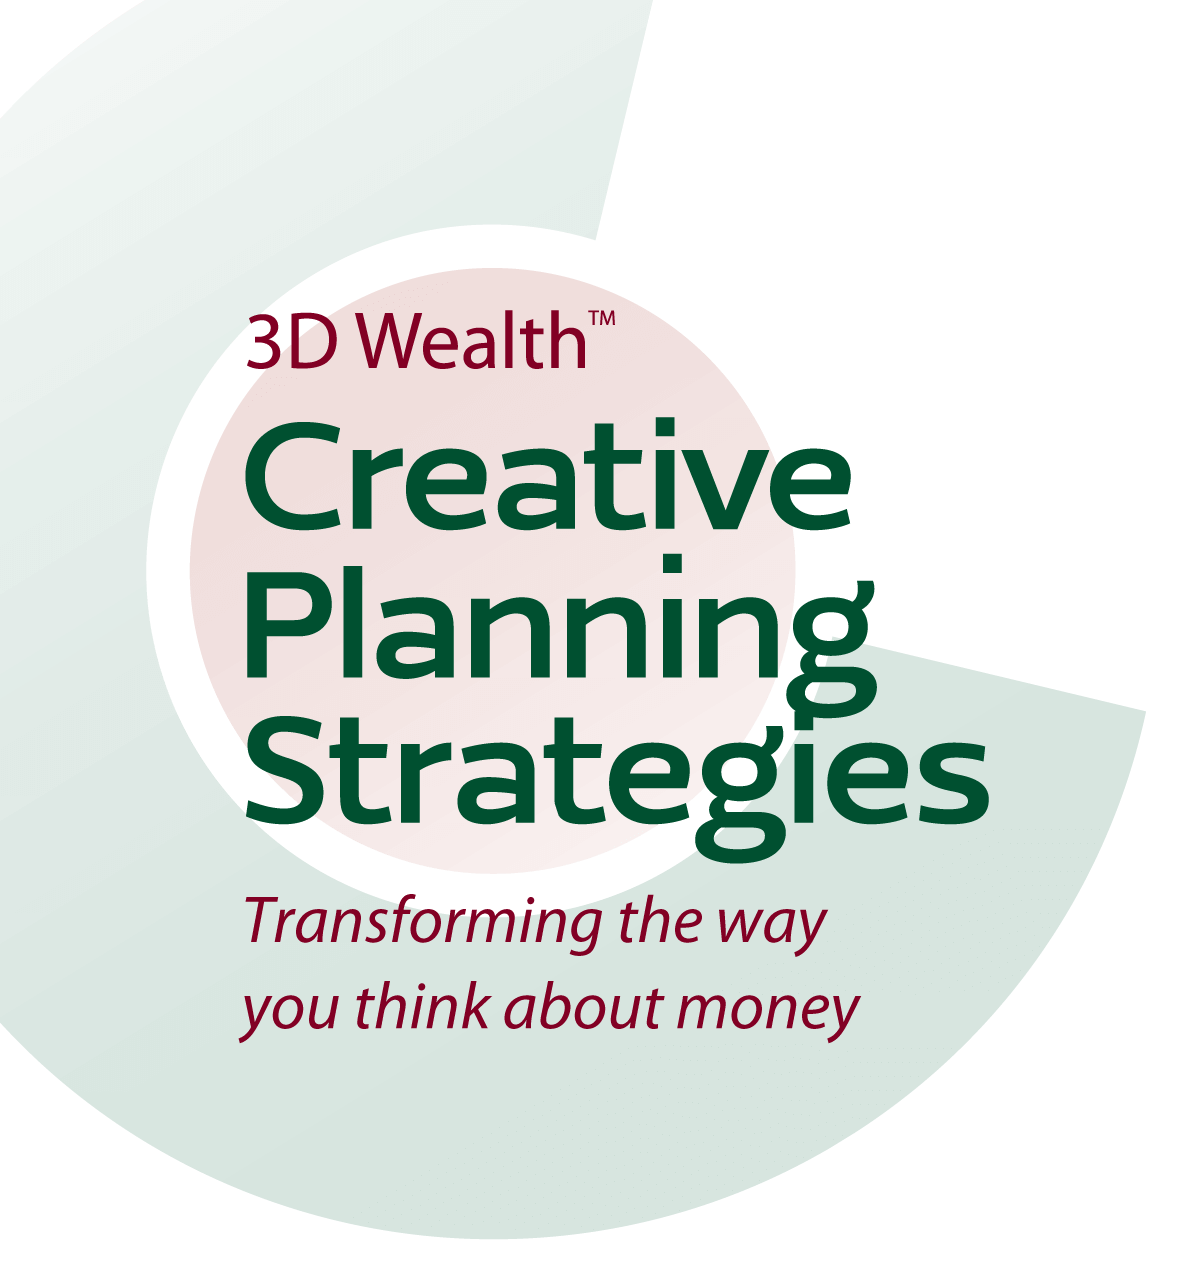 Creative Planning Strategies